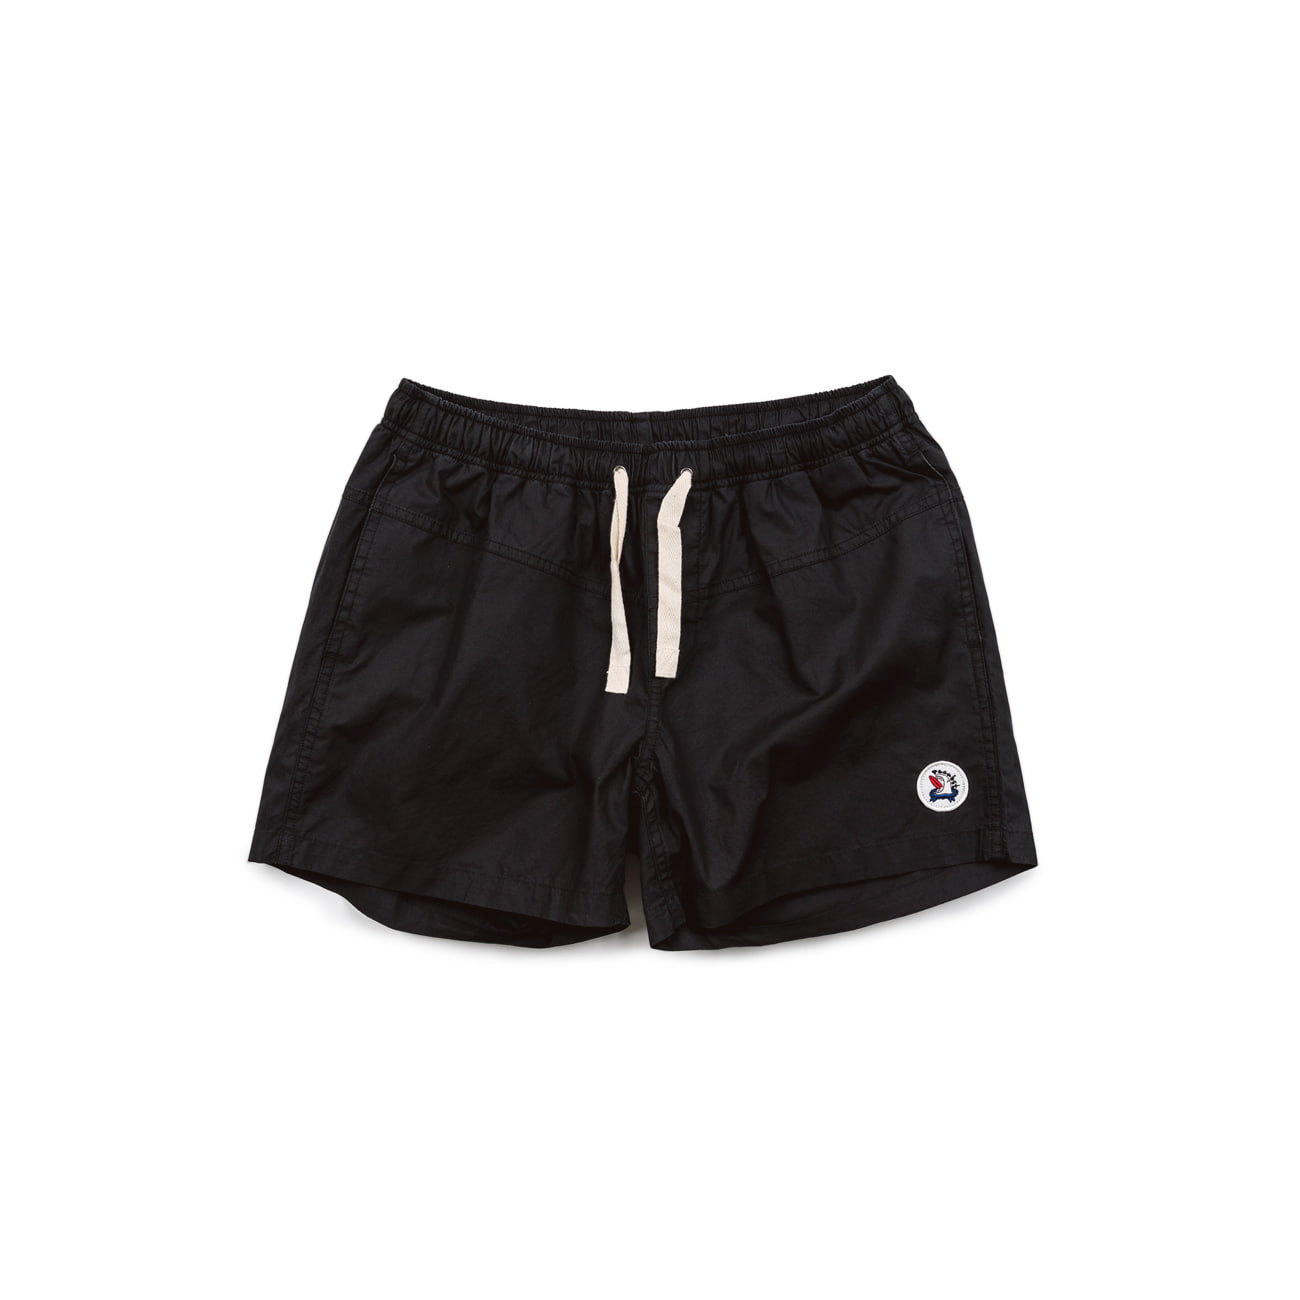 M.Nii x Pabst Blue Ribbon Shorts